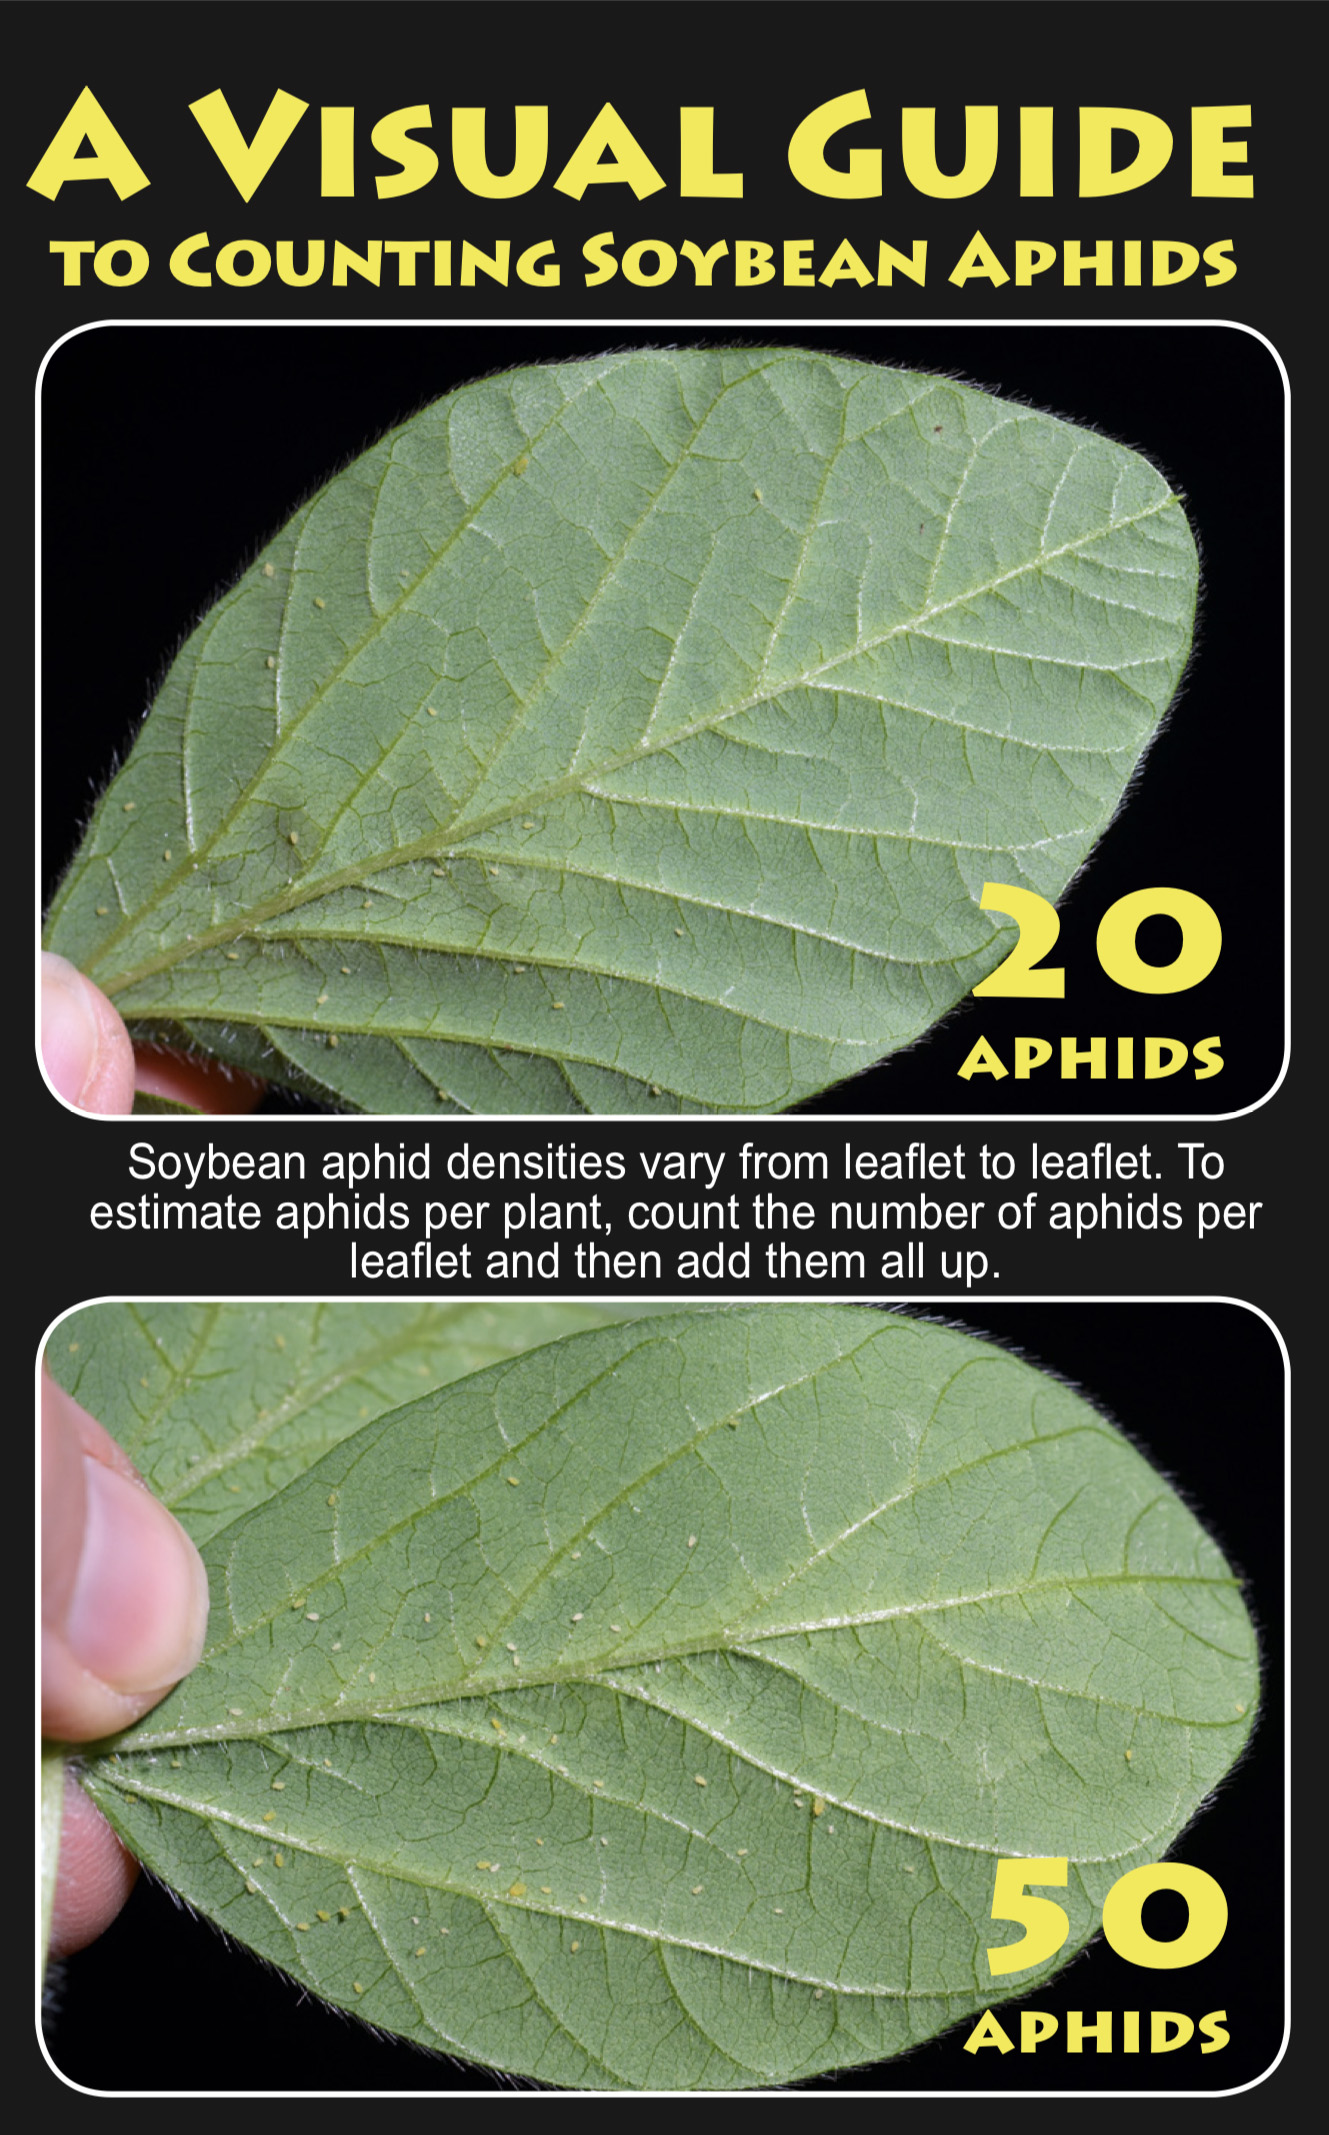 Visual Guide to Counting Soybean Aphids